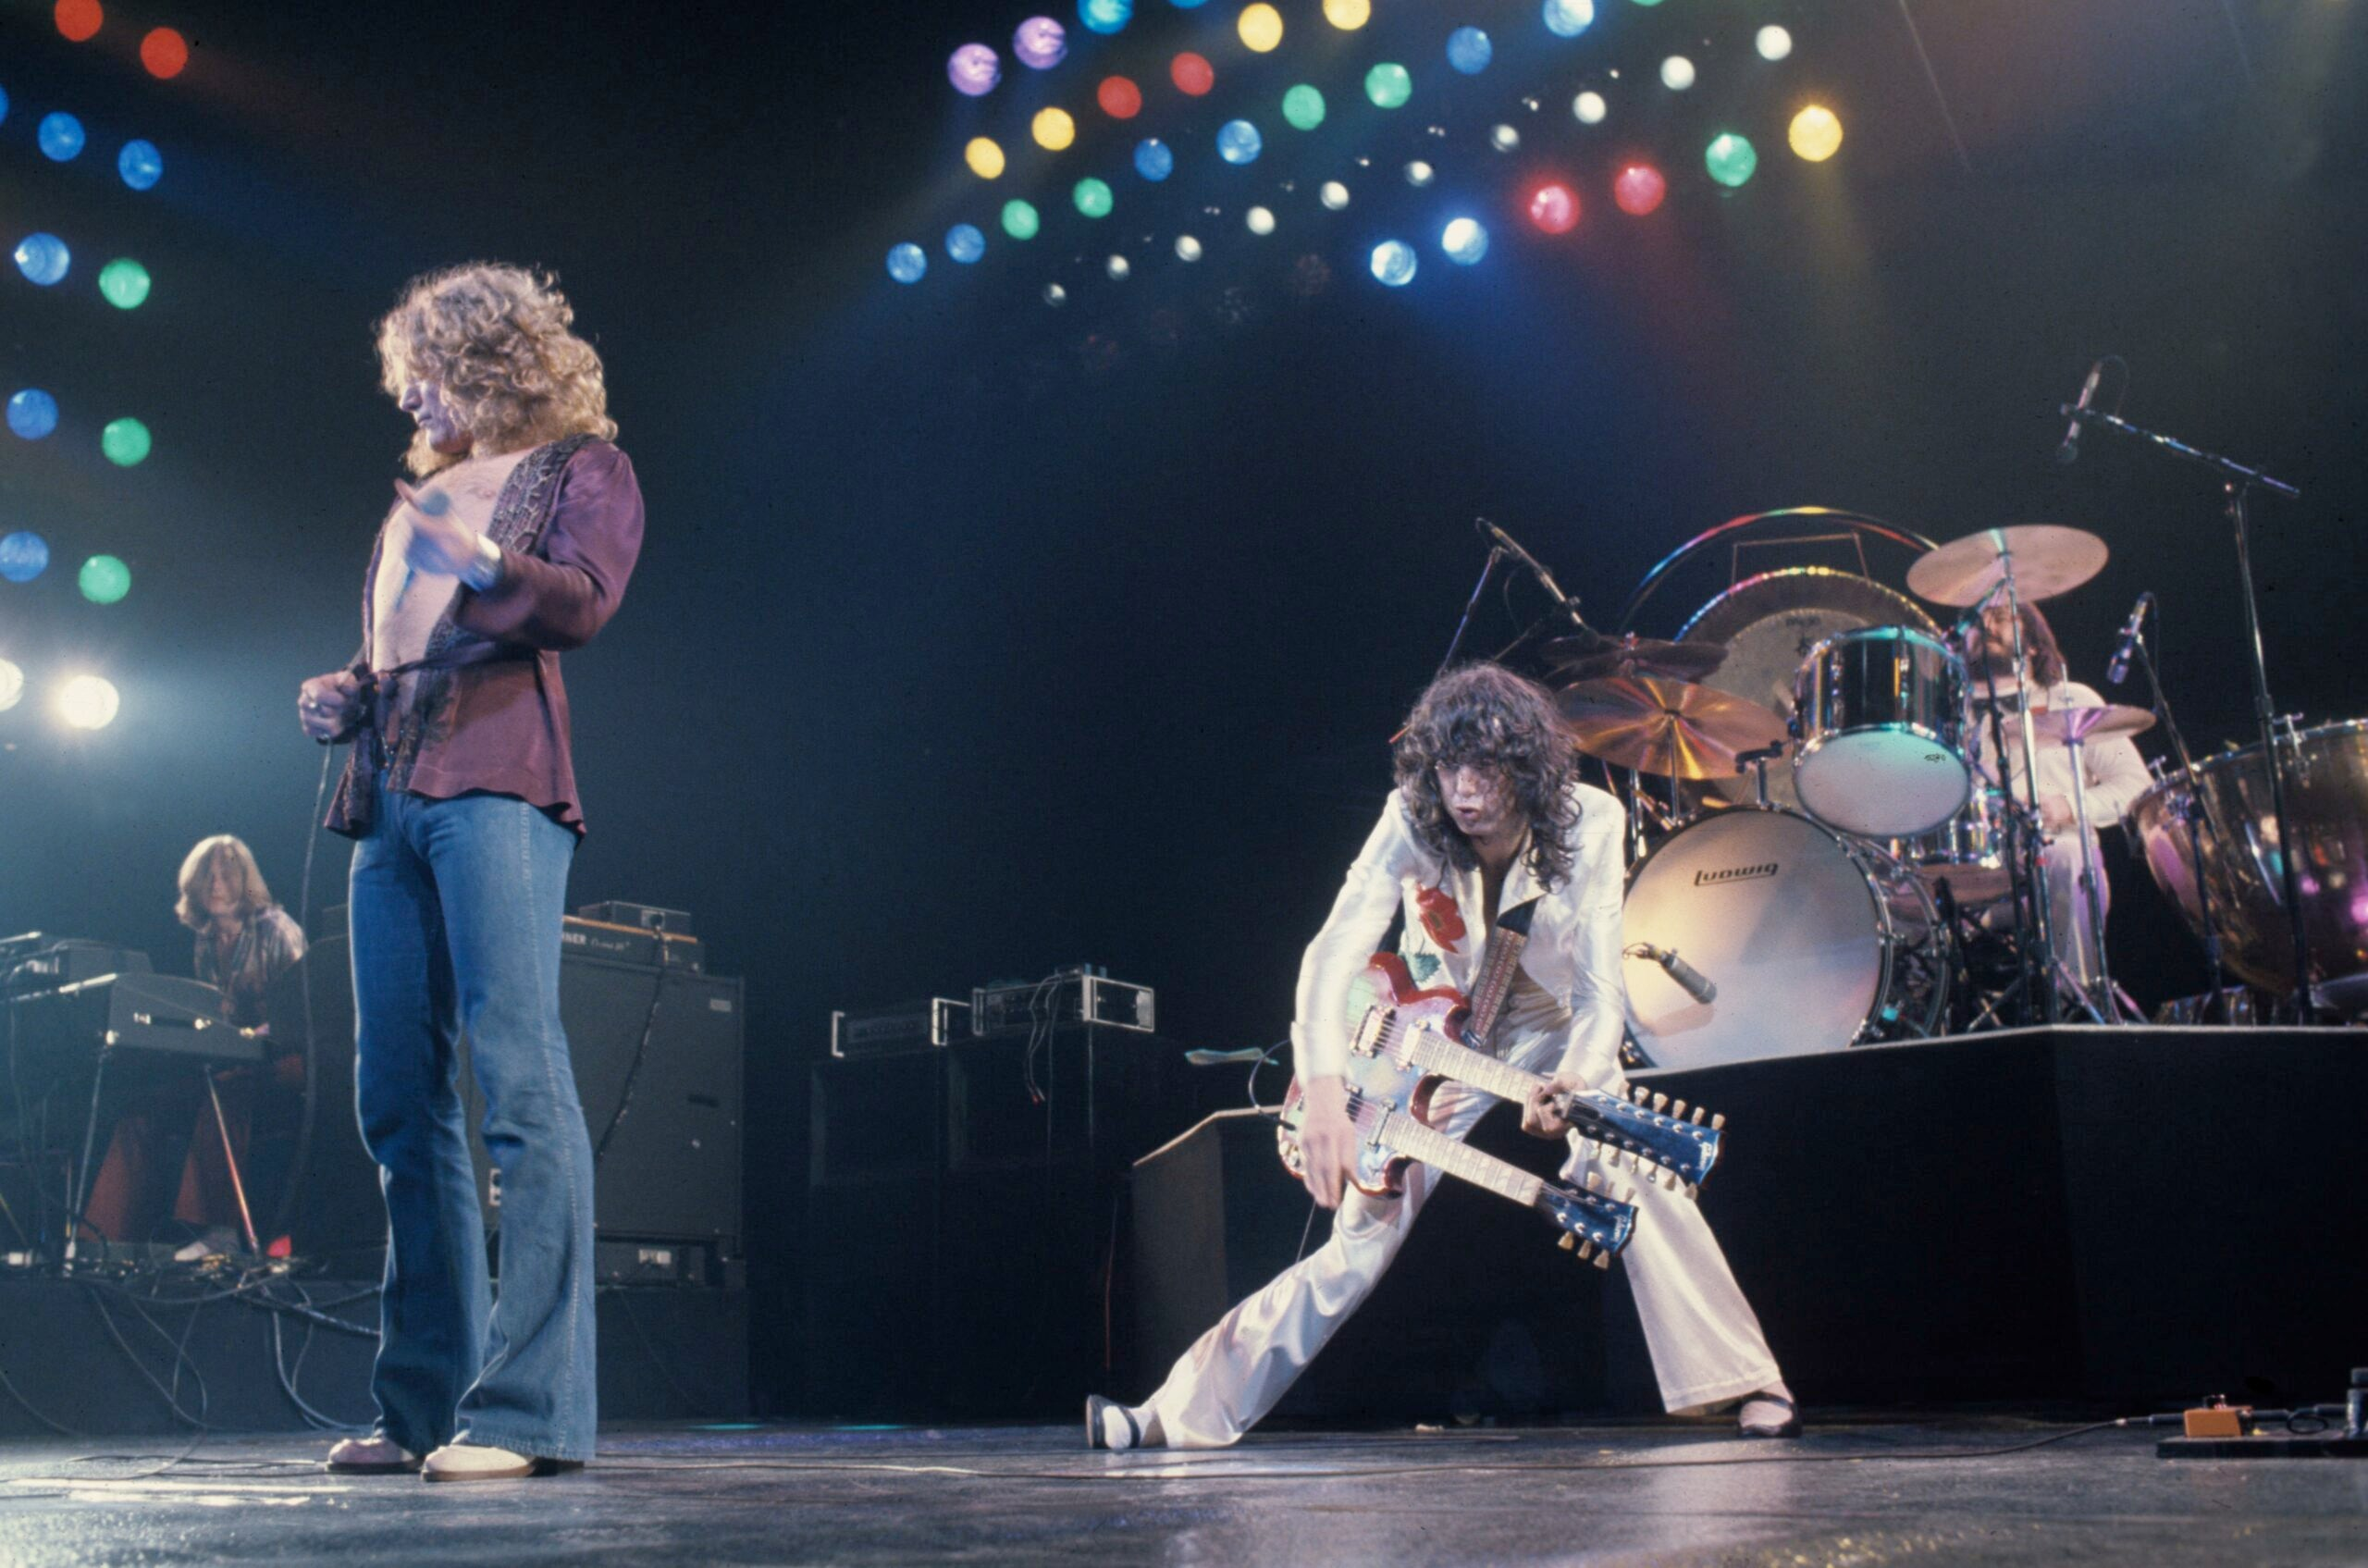 Sultans of Swagger: Neal Preston's Led Zeppelin Photos